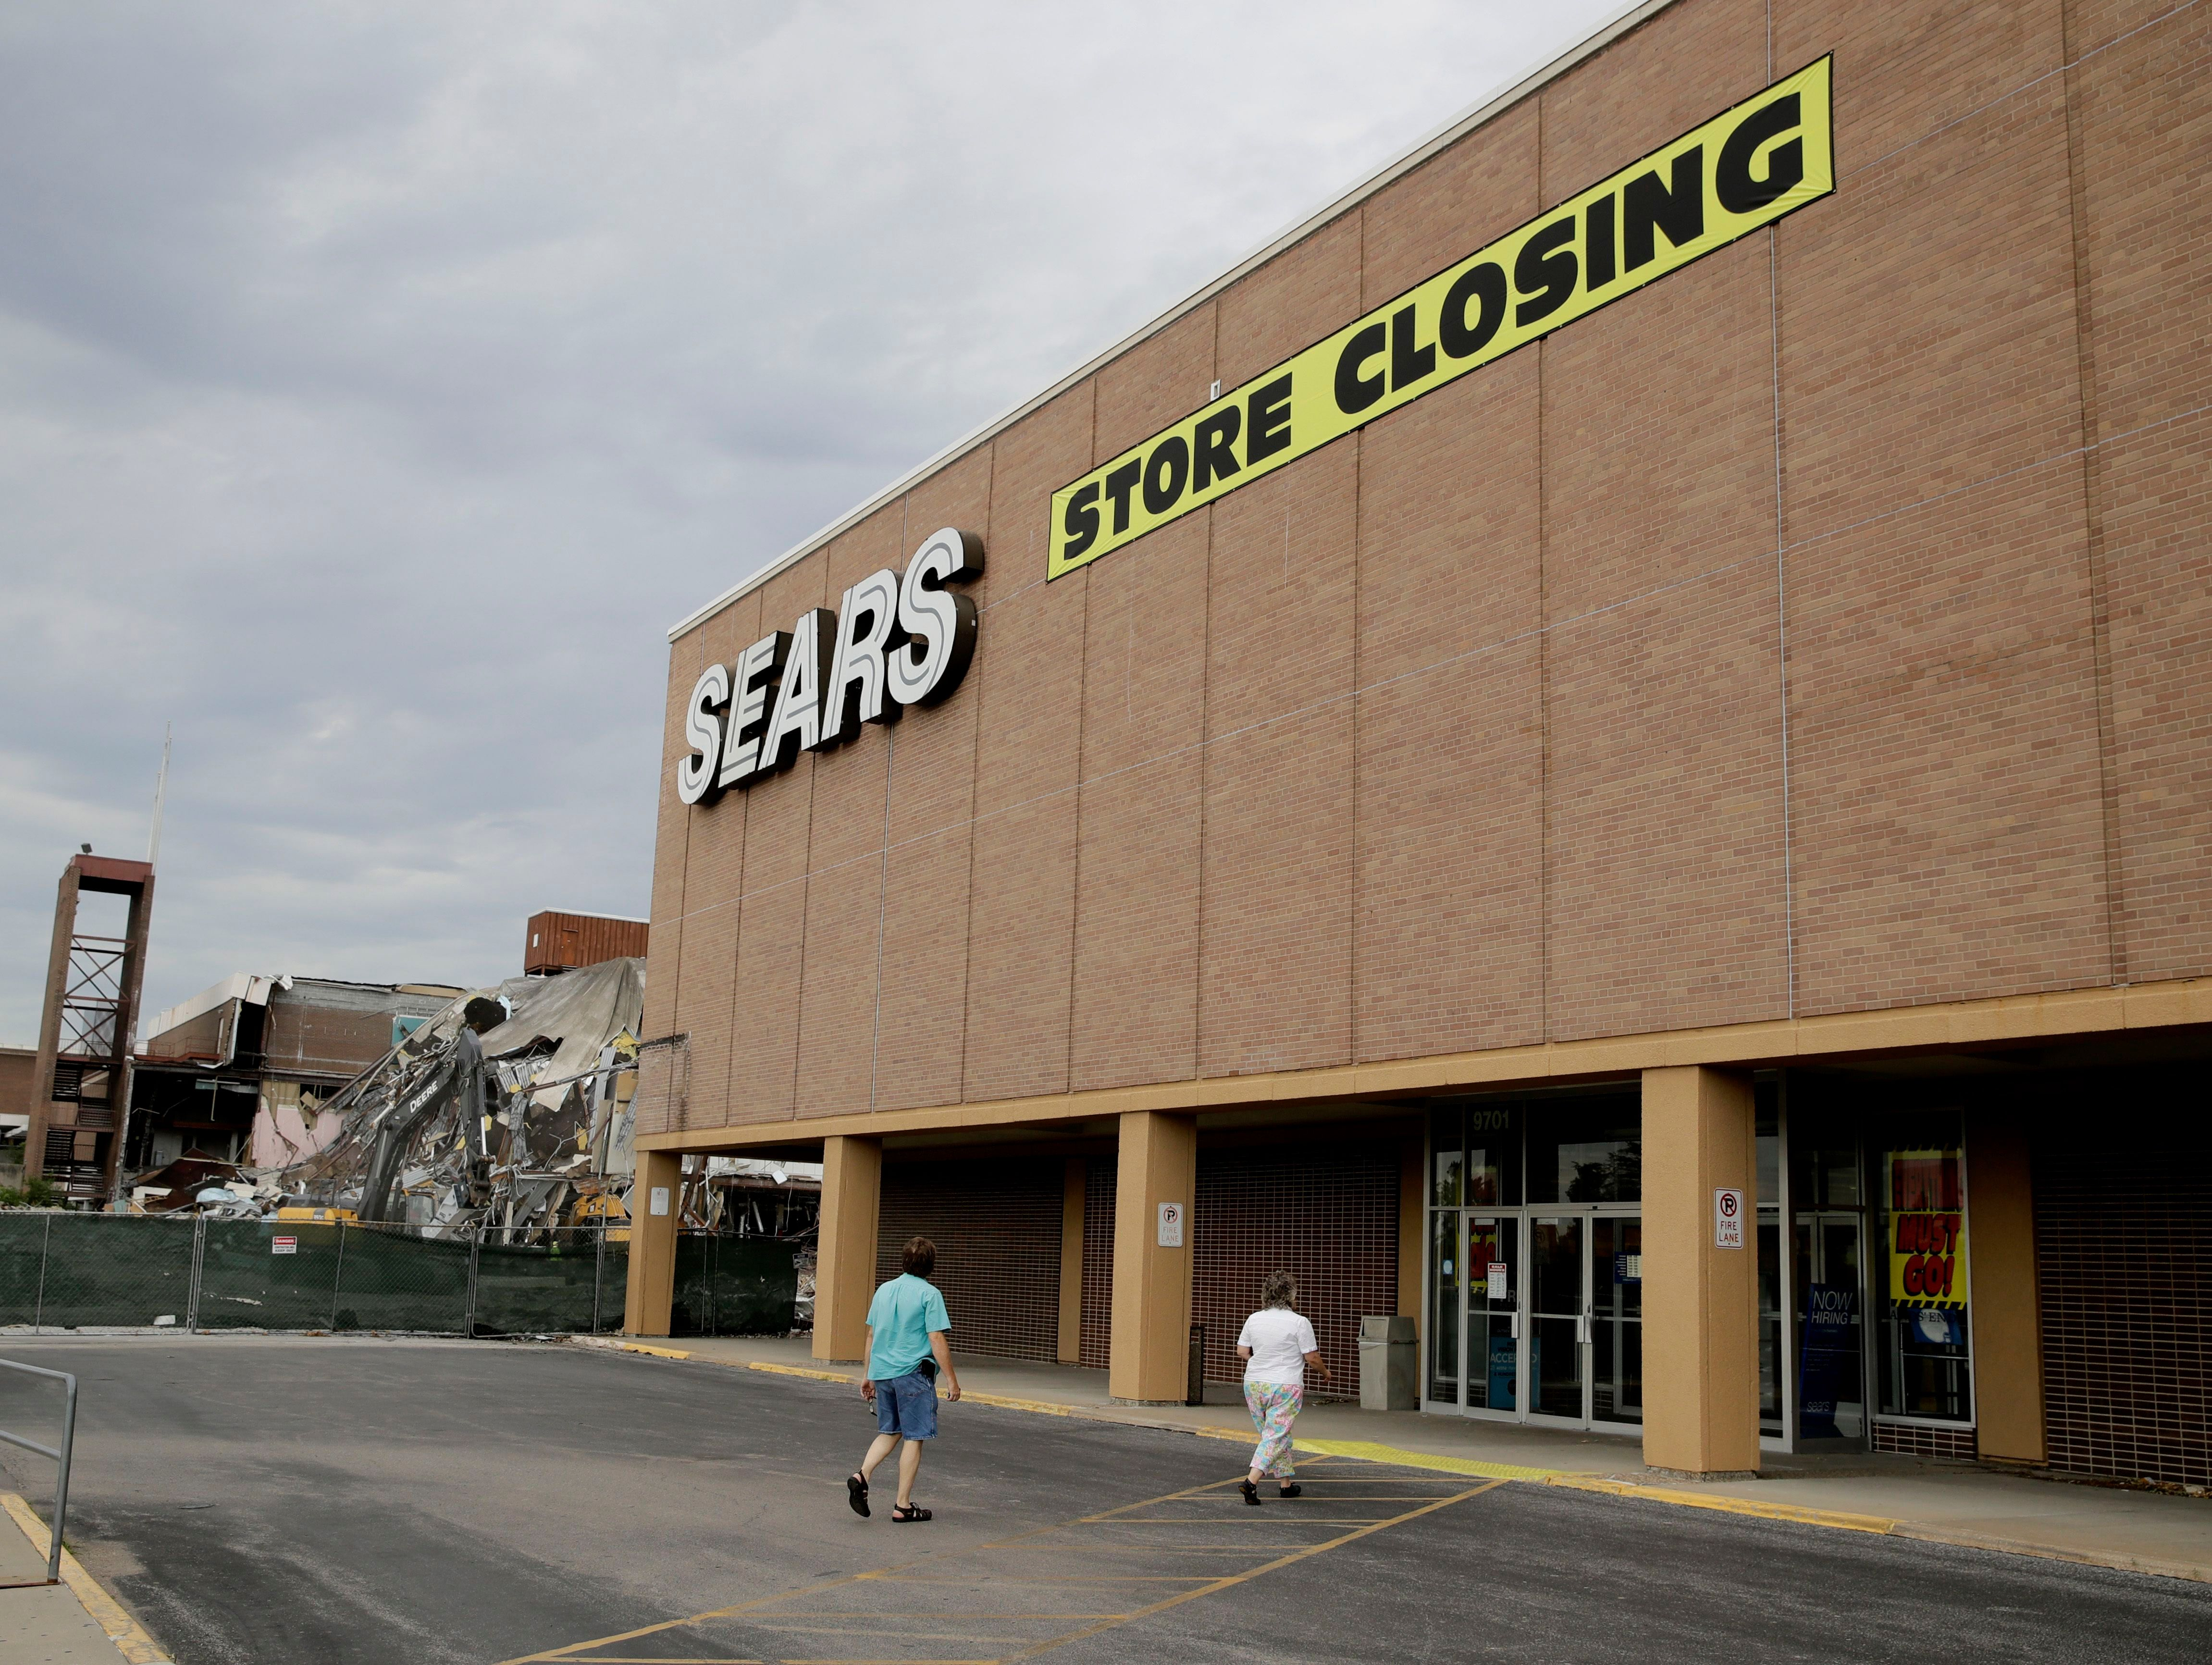 People walk into a Sears store slated for closing that is next to a mall that is being torn down in Overland Park, Kan. Sears has filed for Chapter 11 bankruptcy protection, buckling under its massive debt load and staggering losses. The company once dominated the American landscape, but whether a smaller Sears can be viable remains in questionSears, Overland Park, USA - 07 Jul 2017